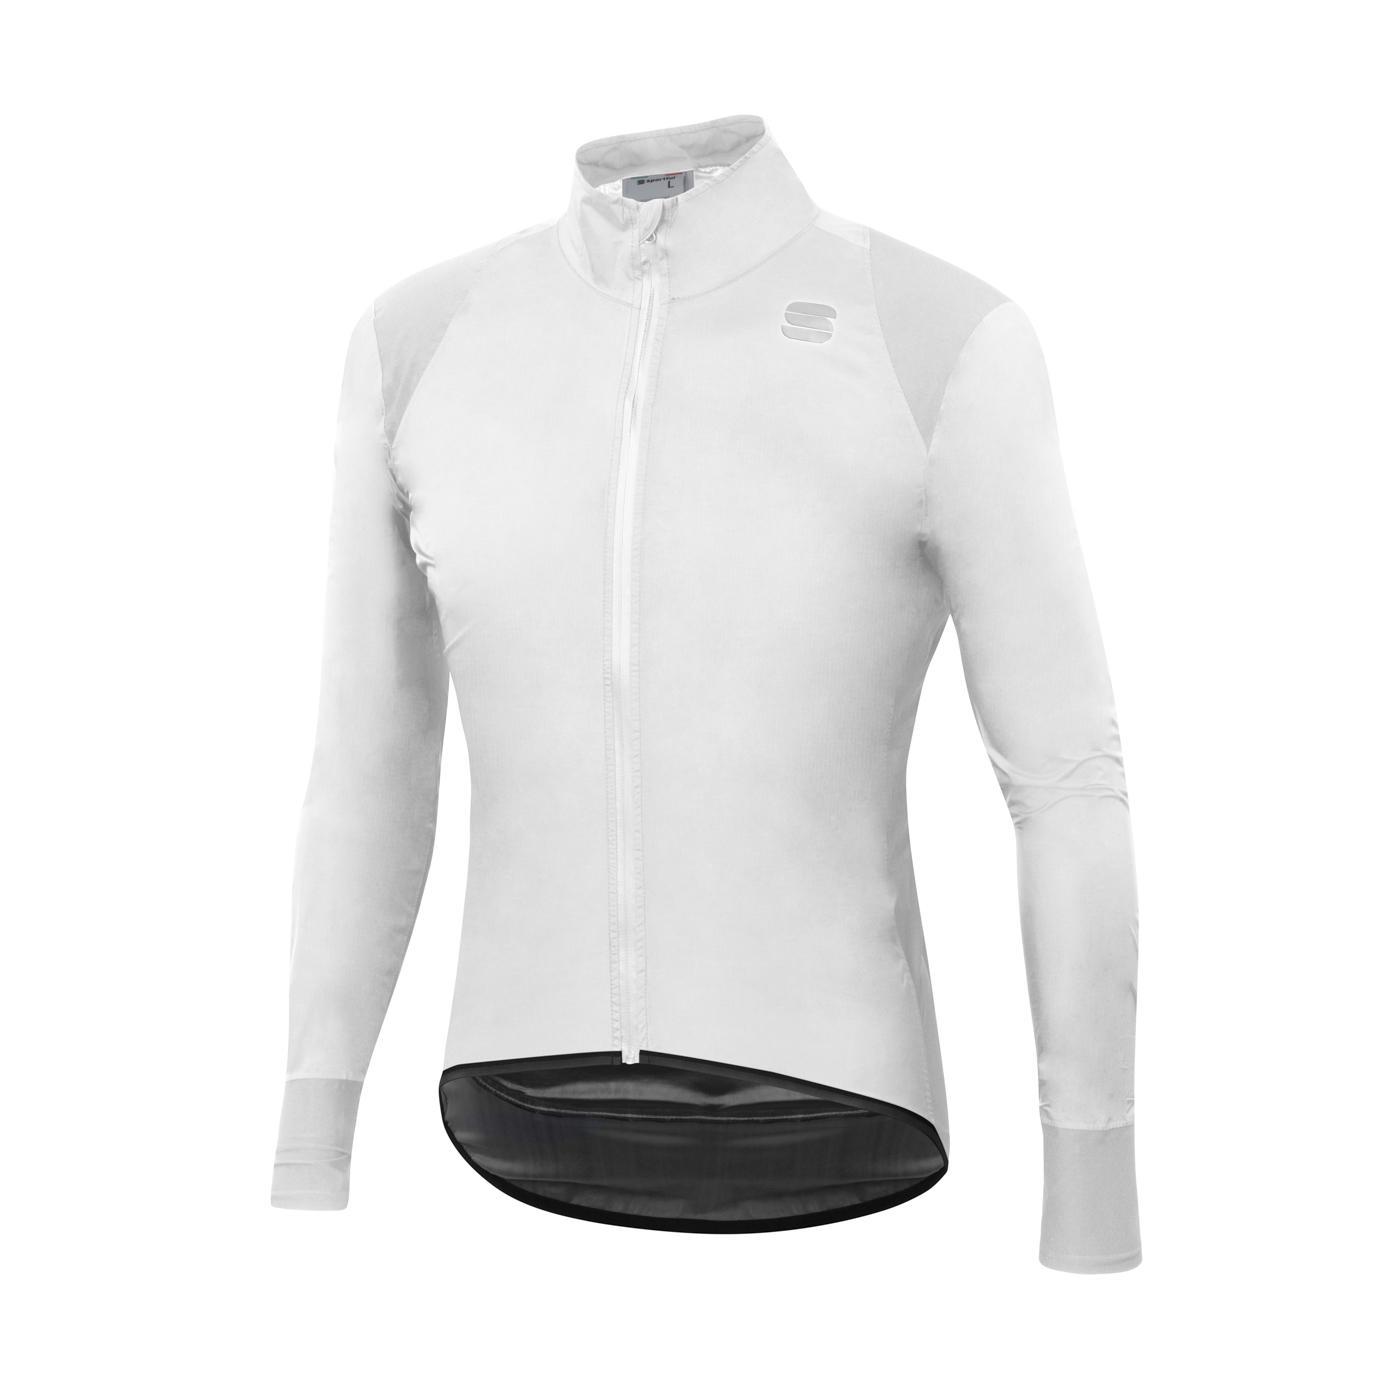 Sportful Fietsjack Lange mouwen Zeer sterk waterafstotend voor Heren Wit - SF Hot Pack No Rain Jacket-White